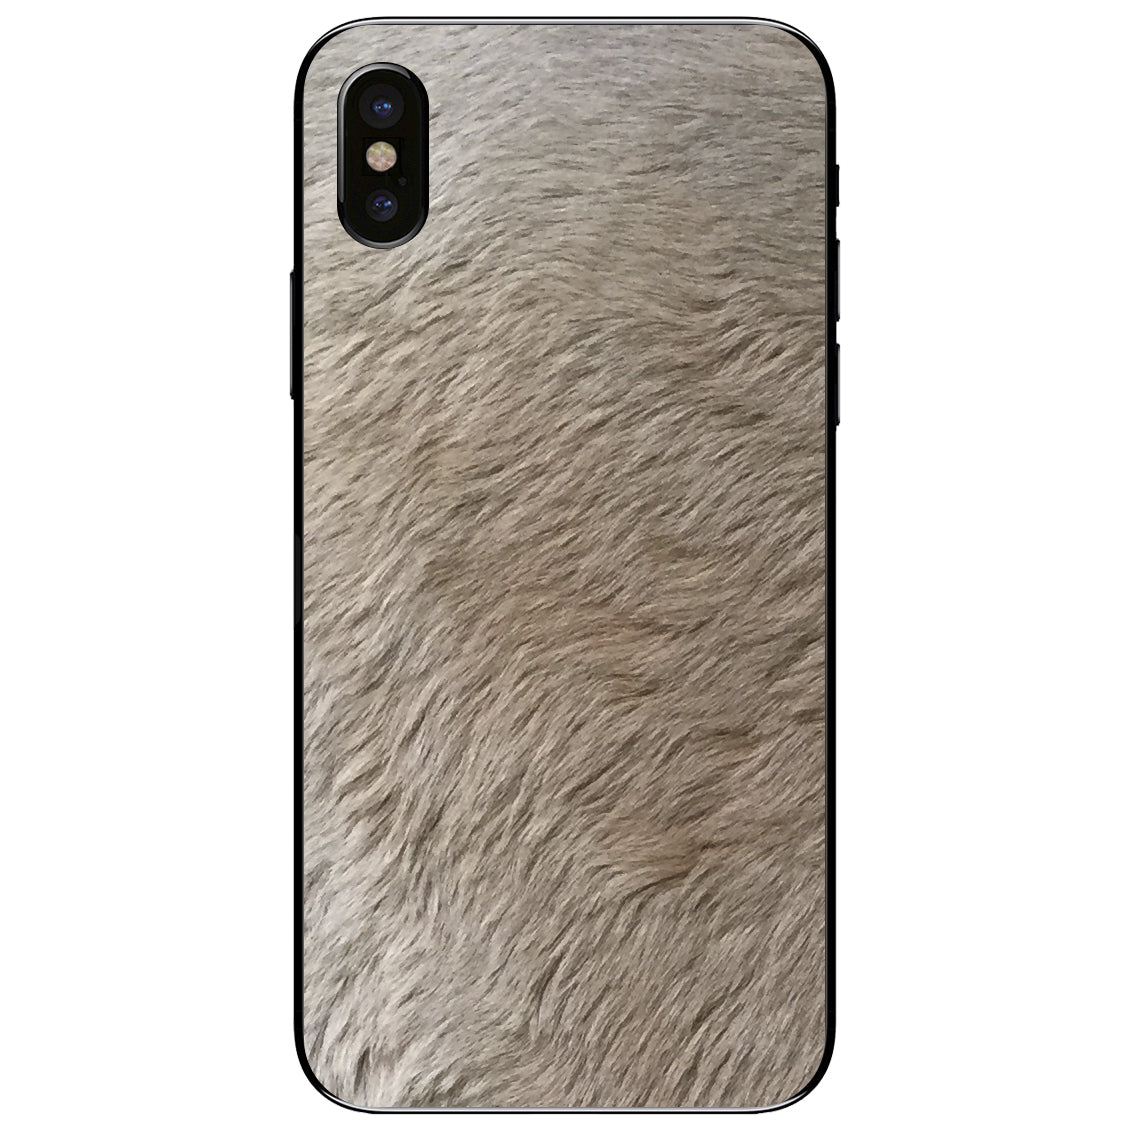 Kangaroo Hair iPhone XS Leather Skin